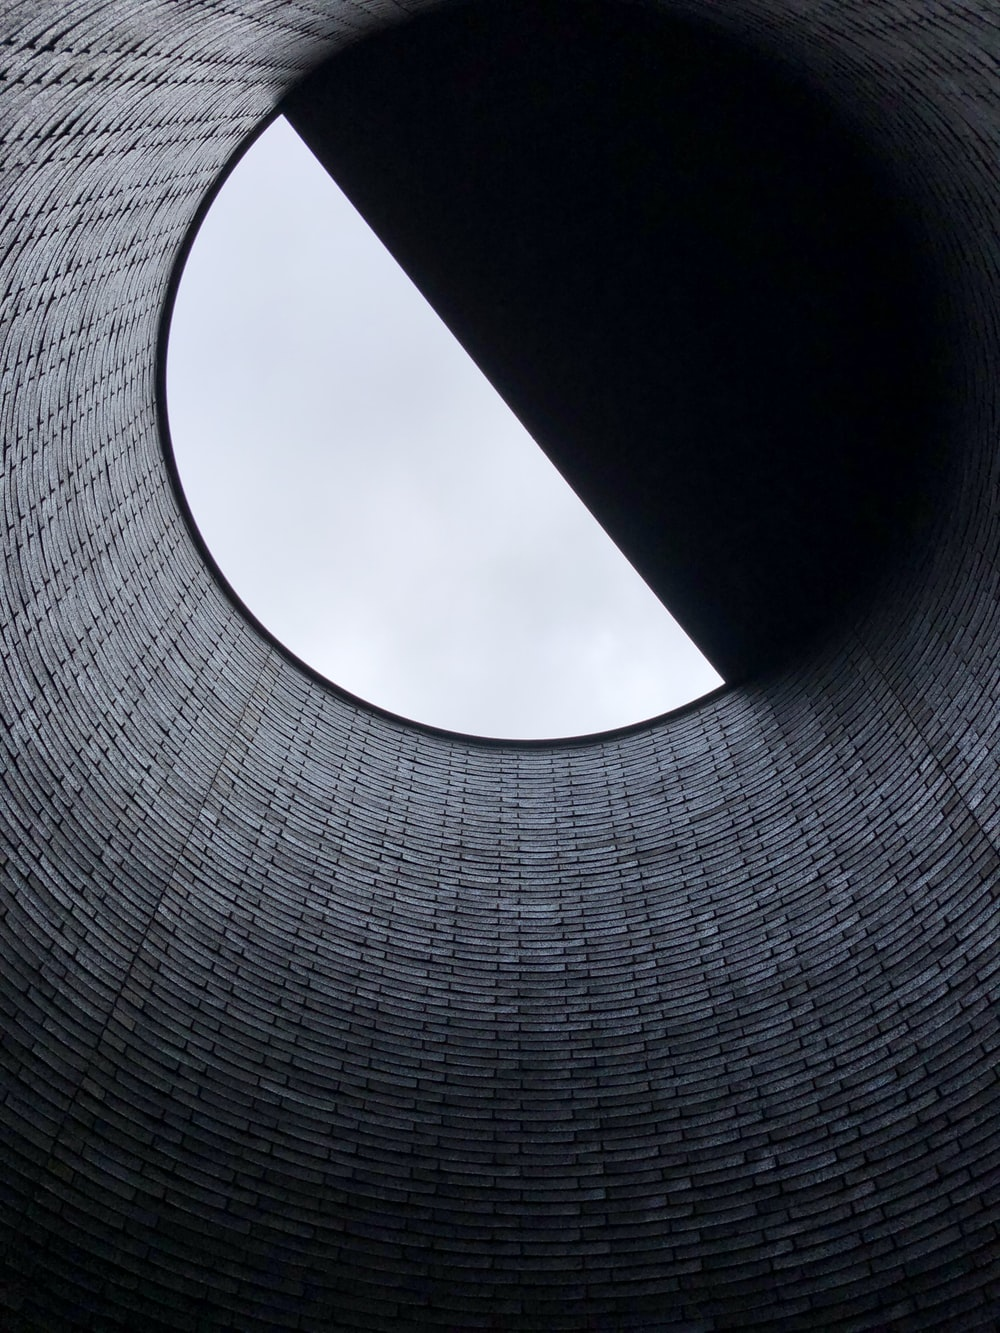 low-angle photography of hole